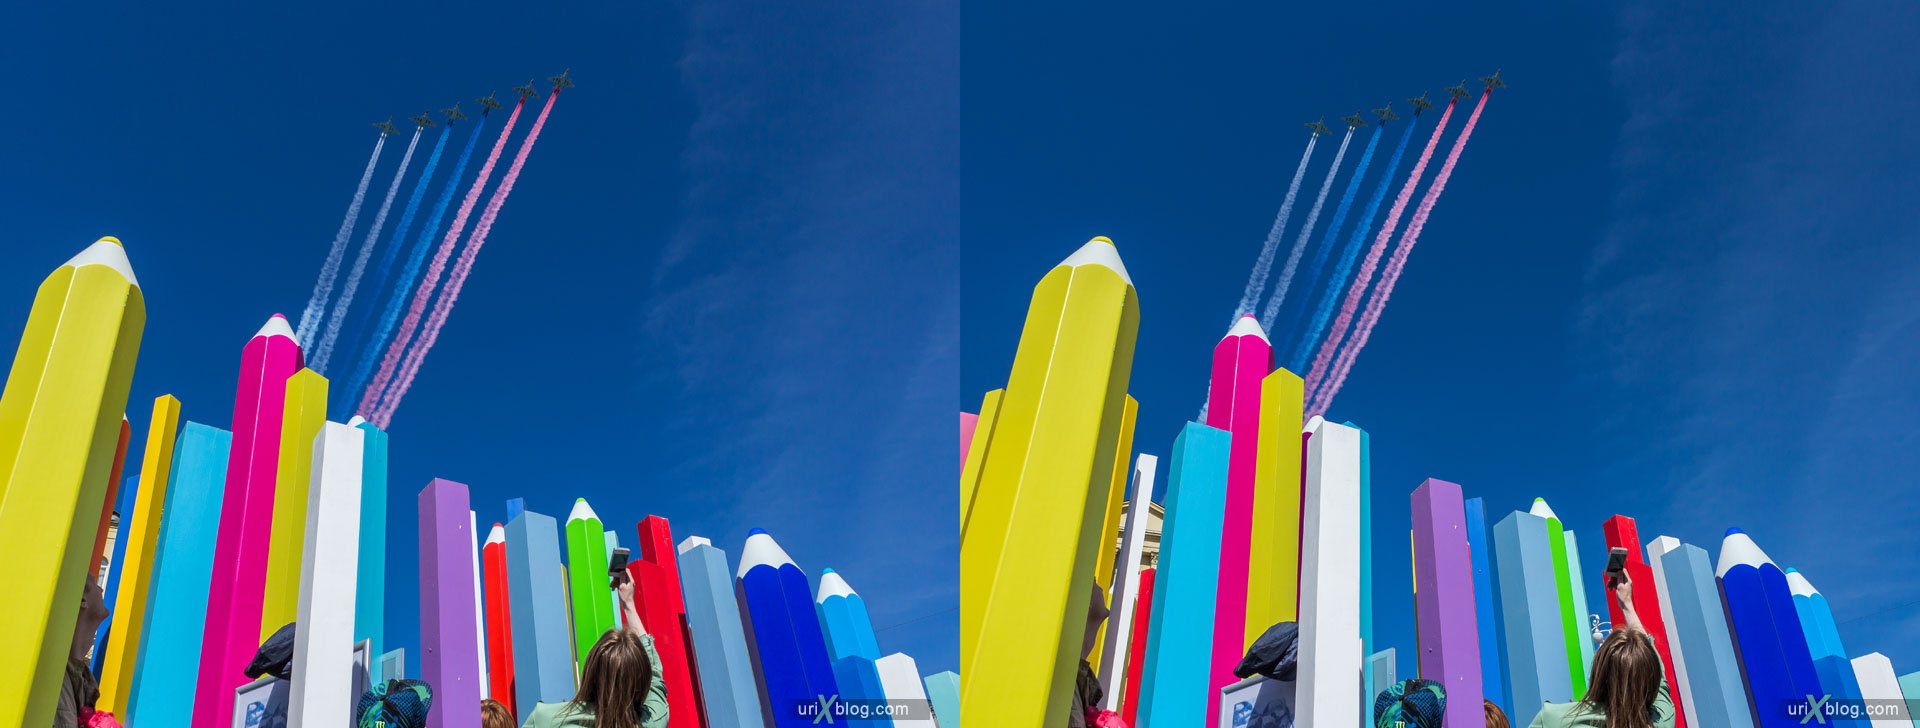 parade, aviation, airplanes, 9 may, victory day, rehearsal, pencils, Moscow, Russia, 3D, stereo pair, cross-eyed, crossview, cross view stereo pair, stereoscopic, 2015